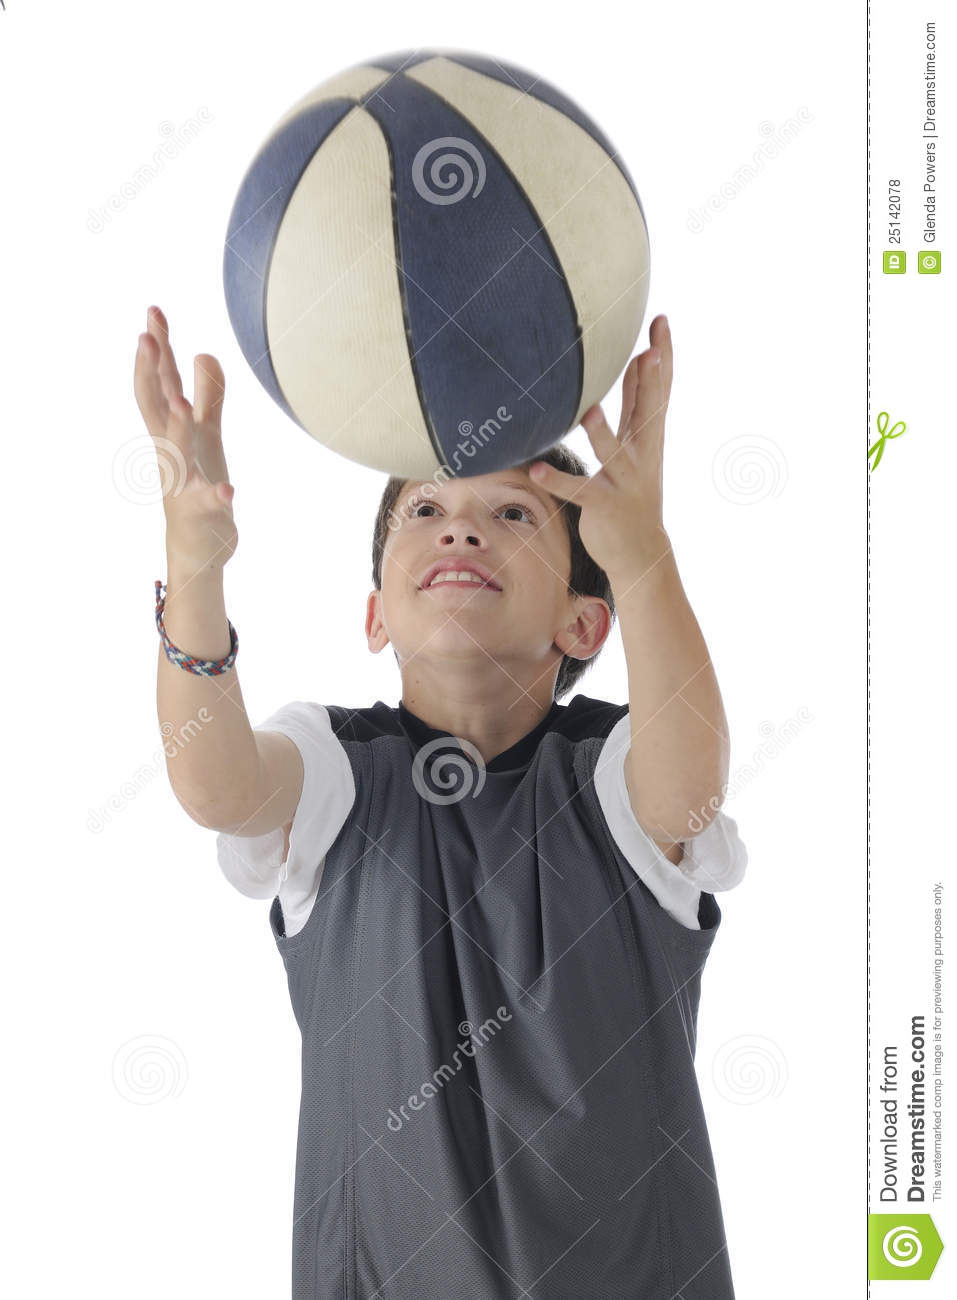 how to teach a child to catch a ball